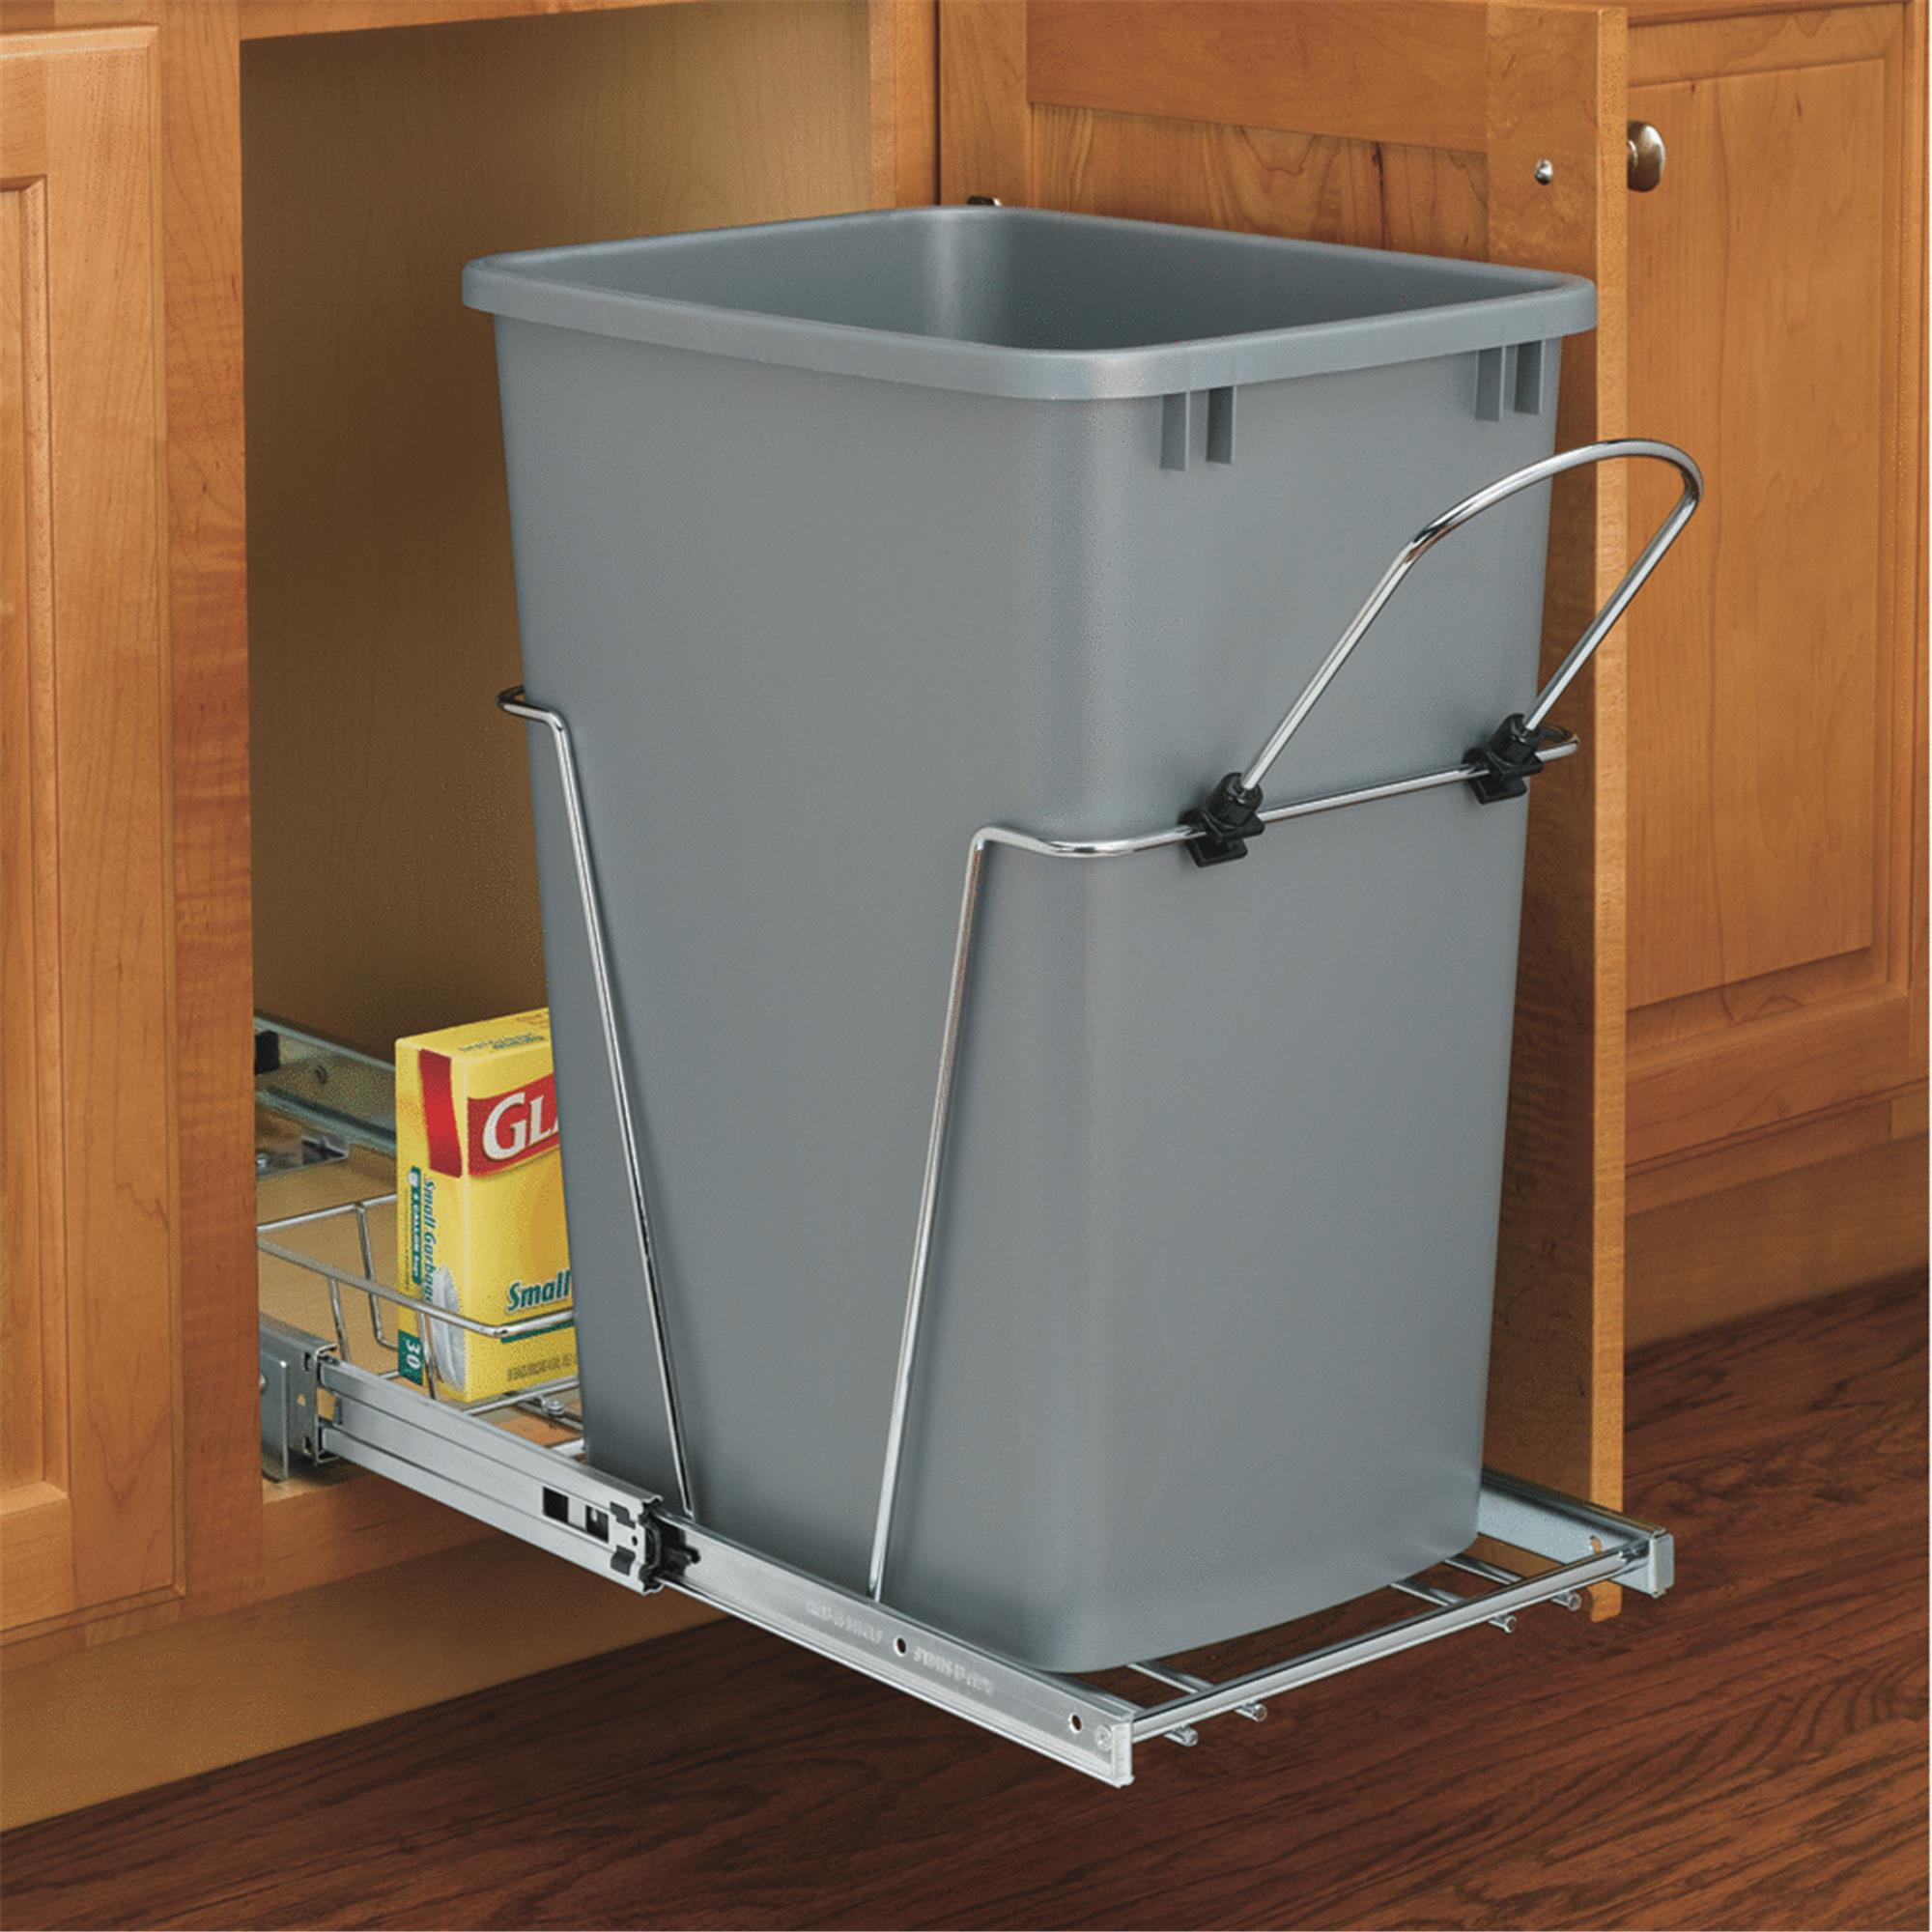 Rev-A-Shelf 35 Quart Pull-Out Waste Container